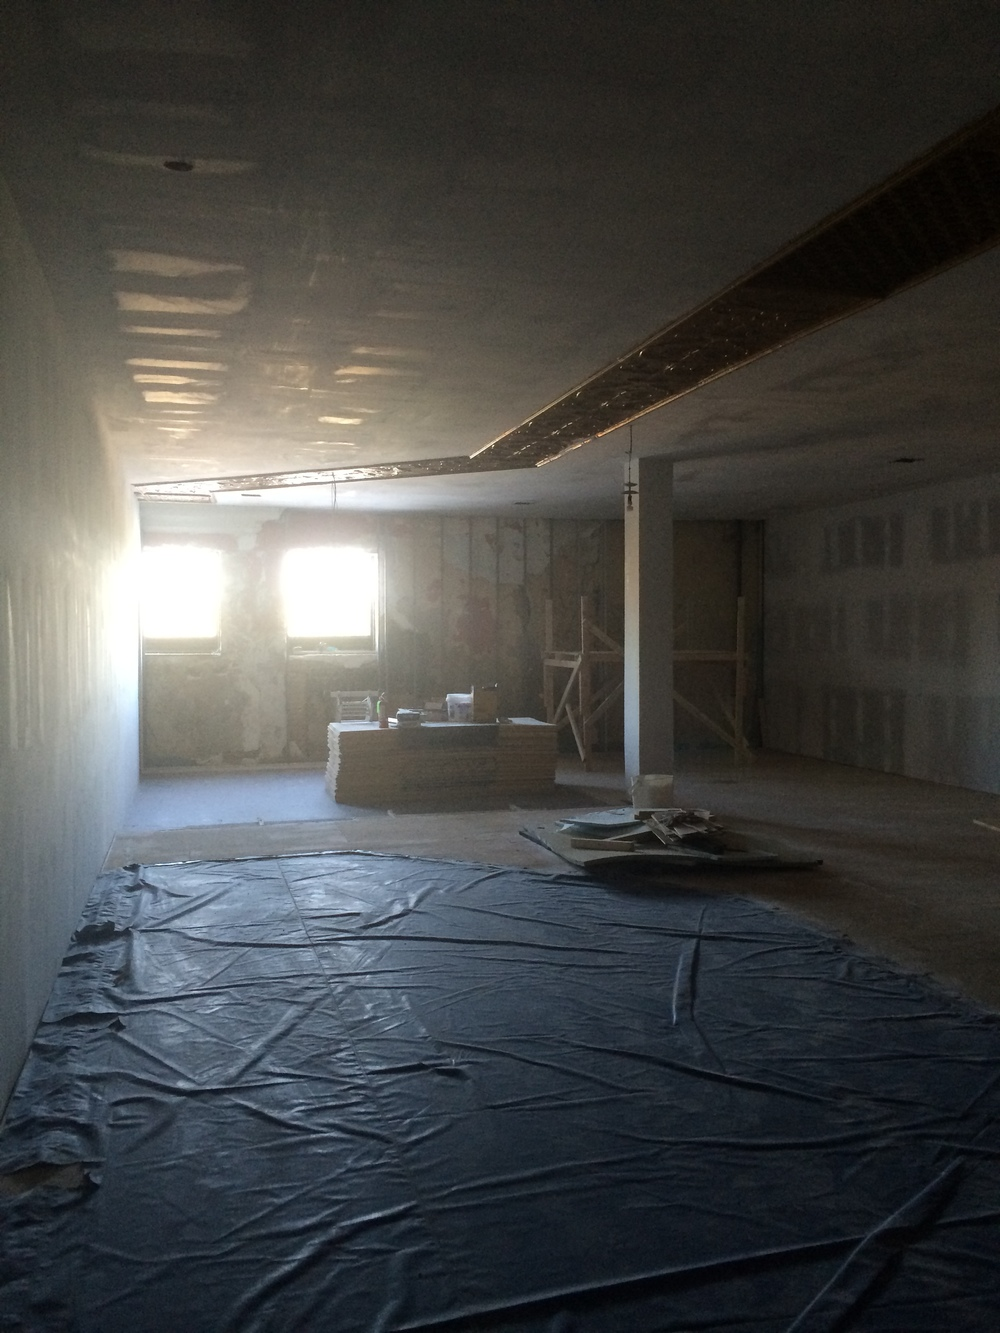 One of the studio spaces, measuring in at a massive 1500 square feet.